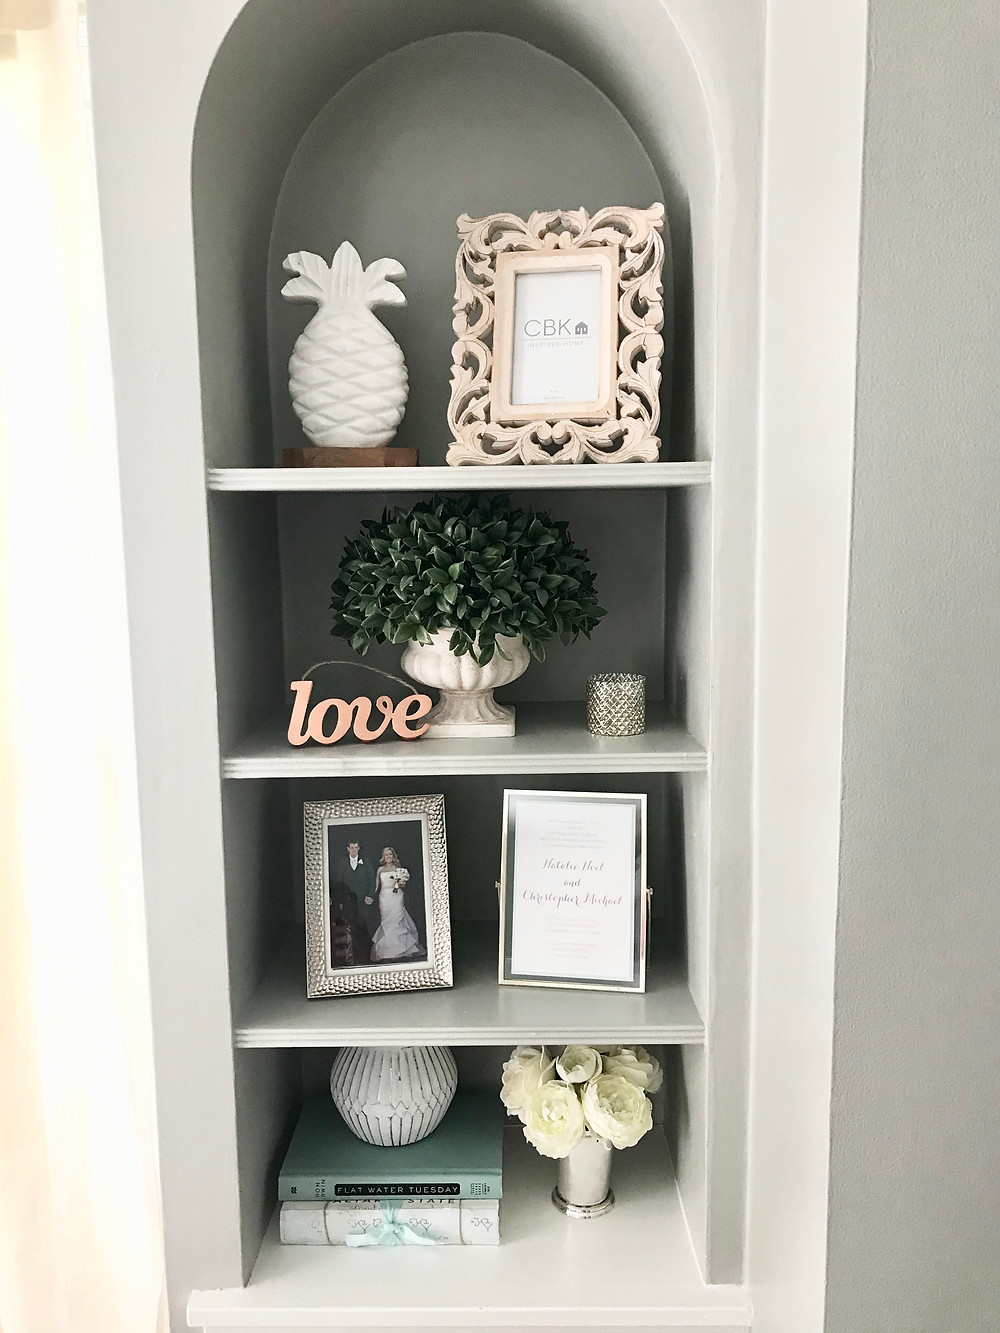 Built Ins shelf styling home decor simple tips framed photos plants books vases